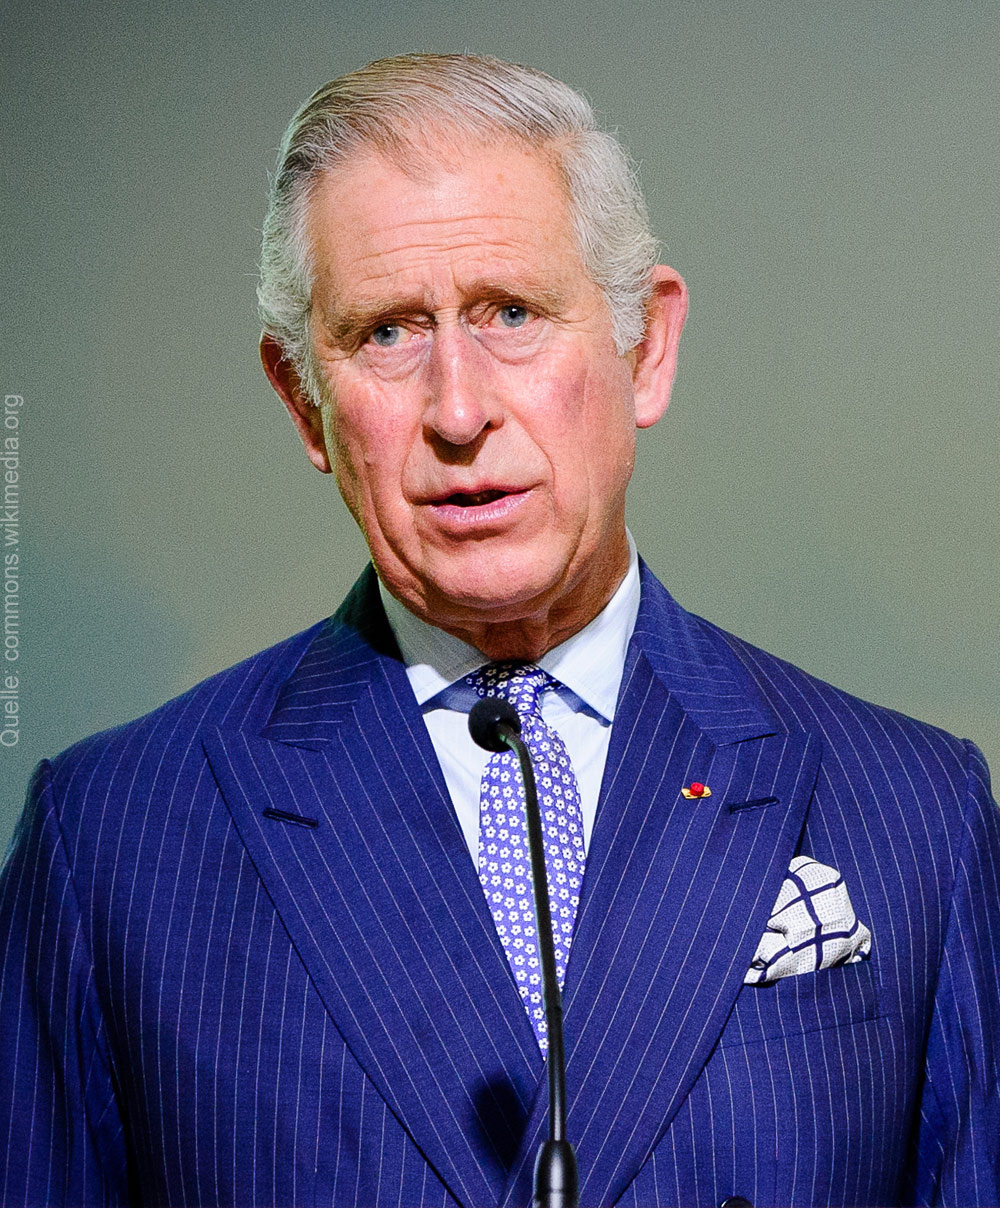 Prince Charles wird 70